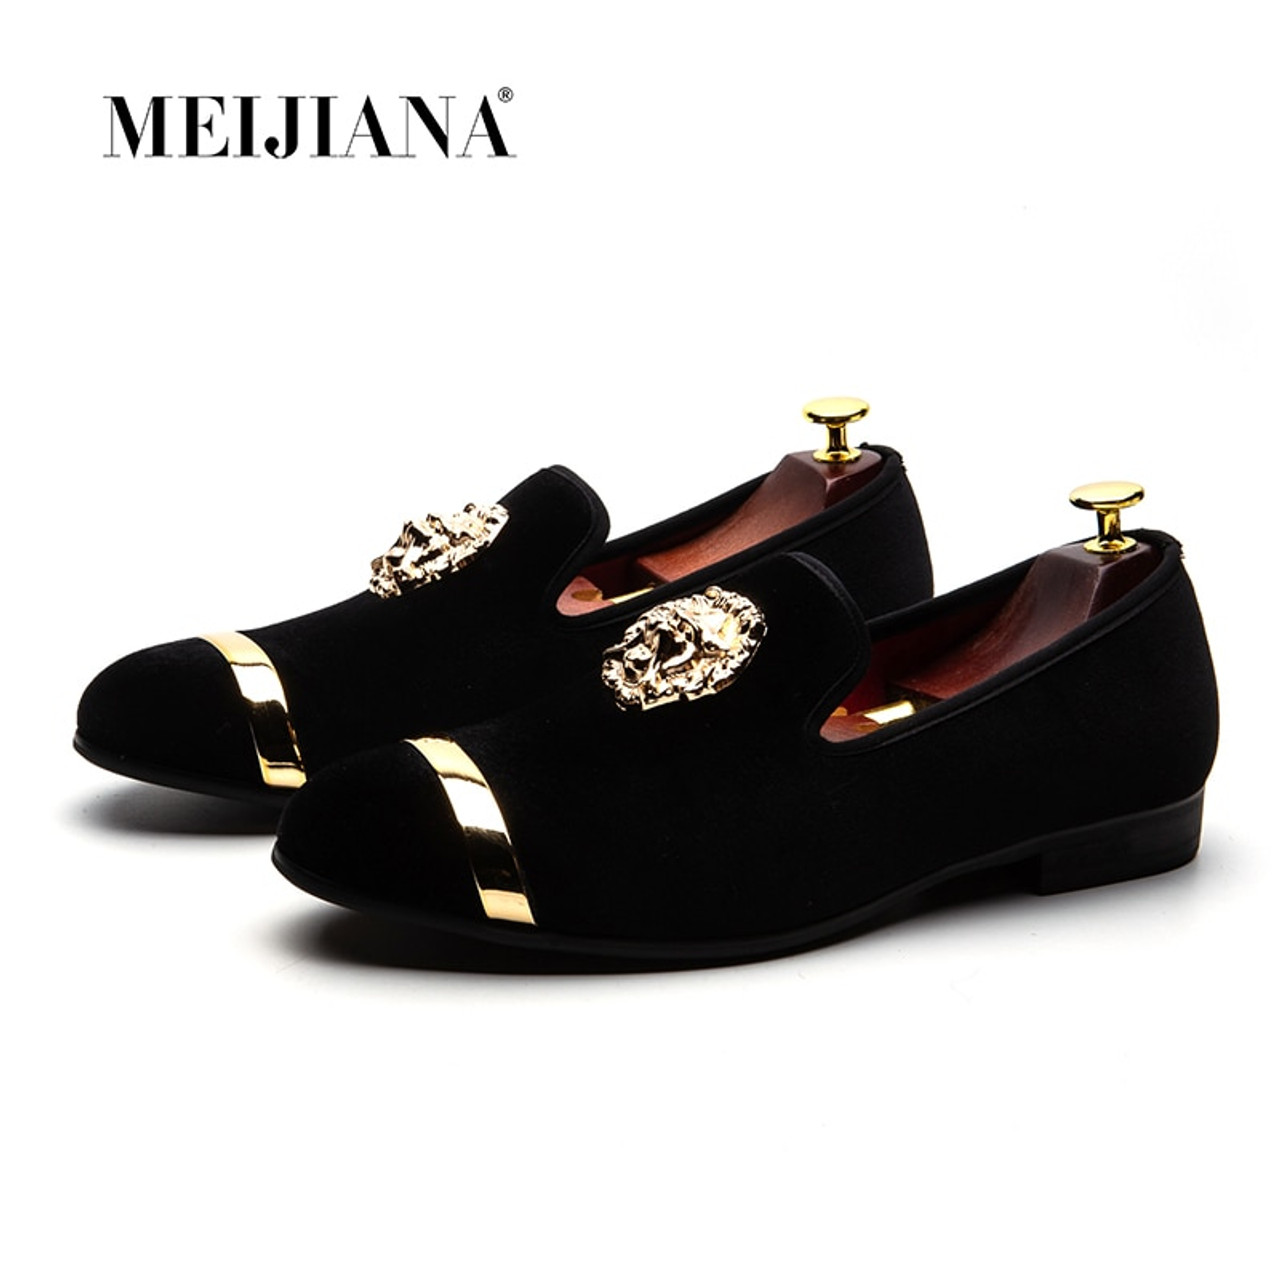 6a0e7a6b48 ... MEIJIANA 2018 New Big Size Men's Loafers Slip on Men Leather Shoes  Luxury Casual Fashion Trend ...